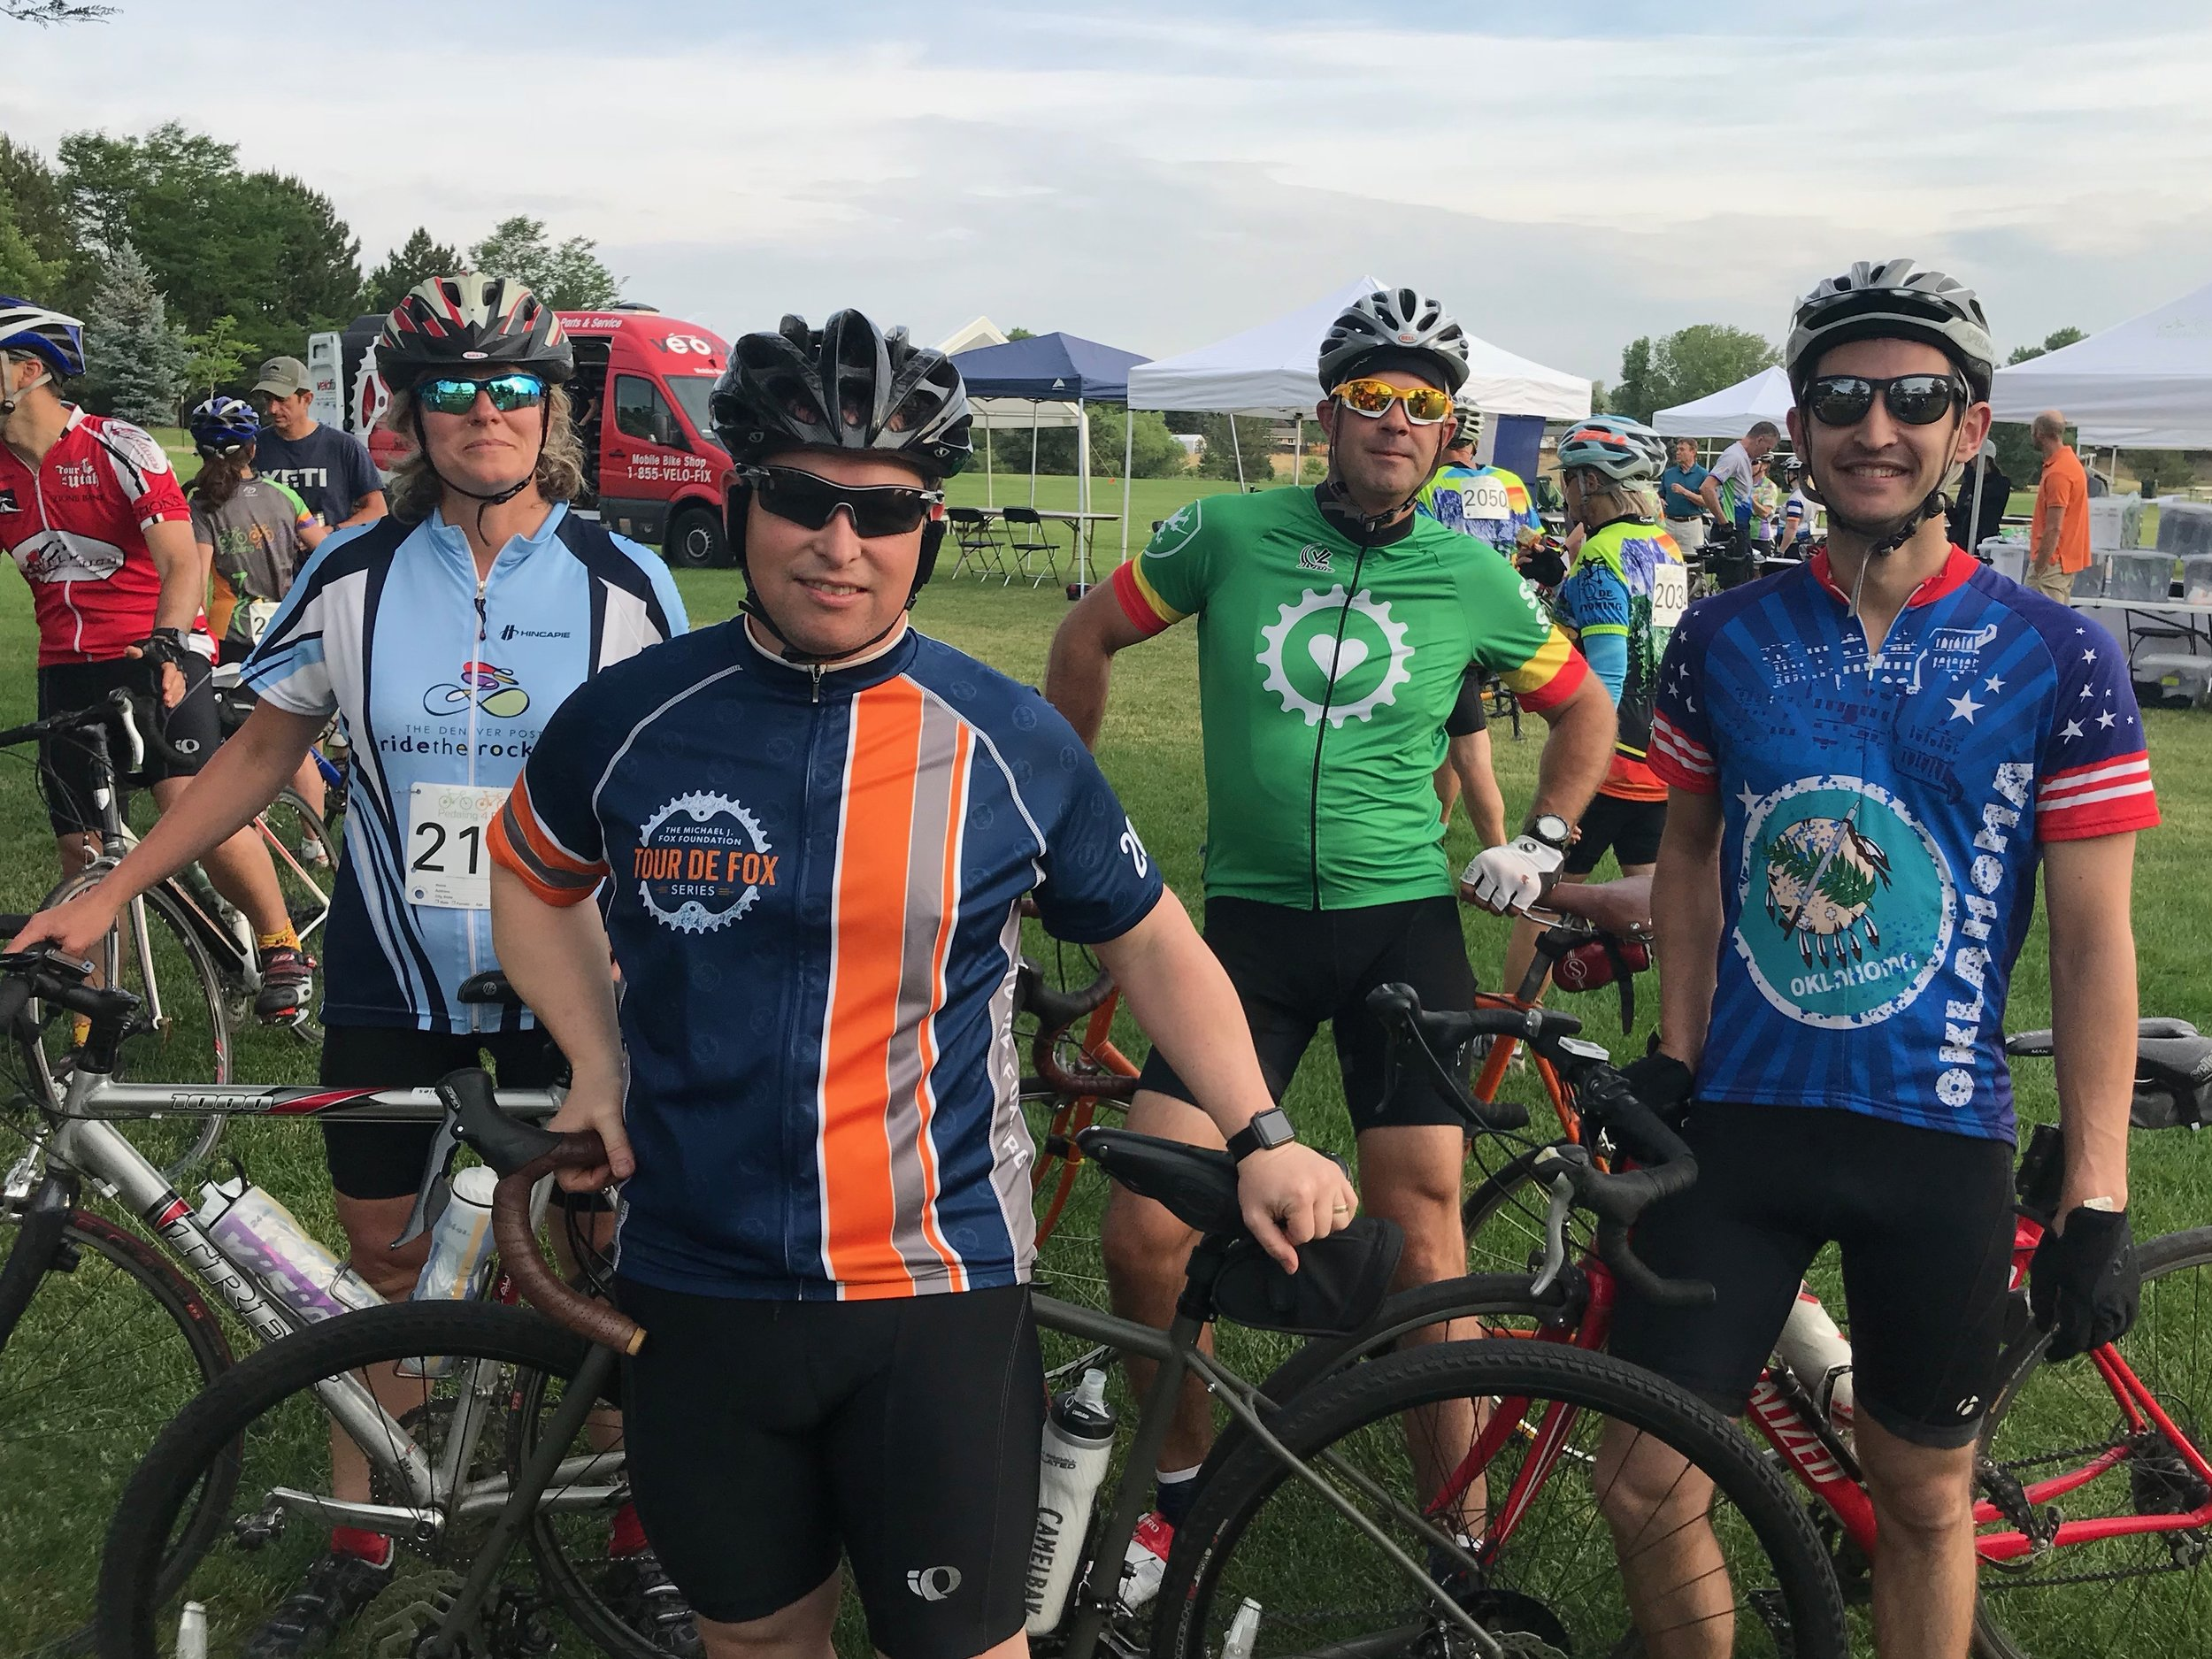 That's me (short guy with the black helmet) and some of my dear friends participating in Pedaling for Parkinson's in 2018. We did the 60-mile route!